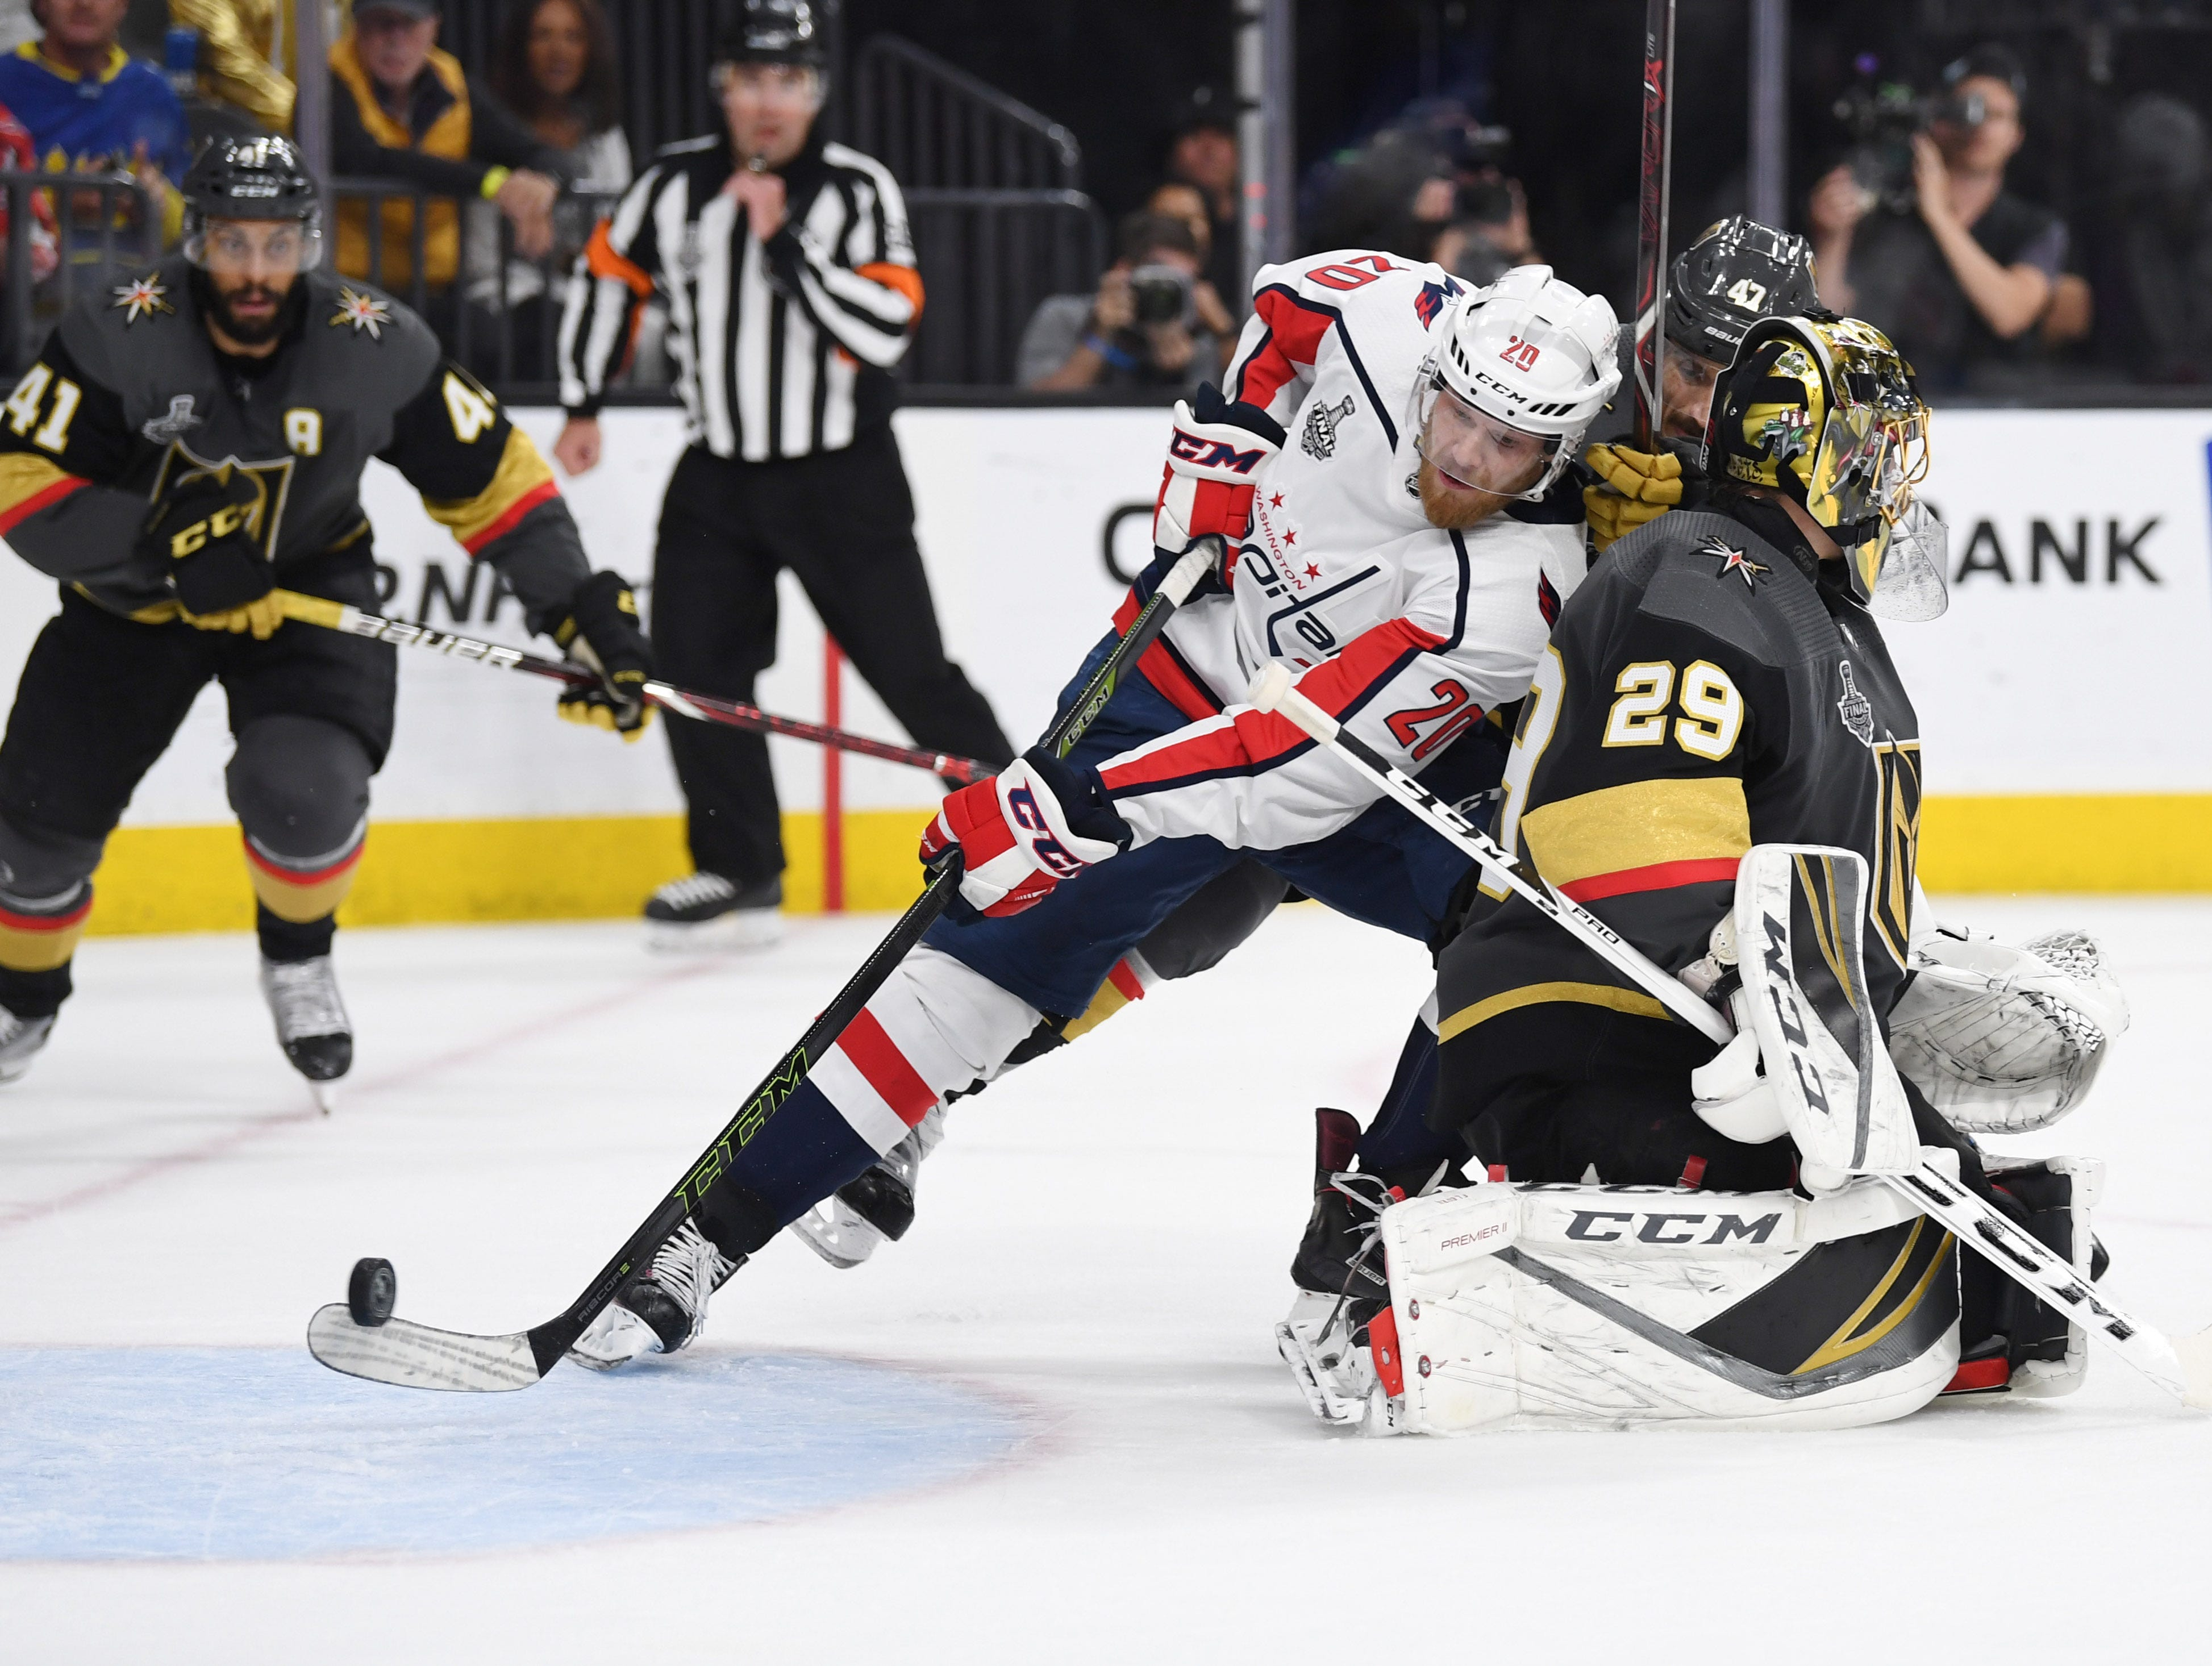 June 7: Washington Capitals center Lars Eller (20) scores the game-winning goal against the Vegas Golden Knights in the third period of Game 5 of the Stanley Cup Final. The Capitals would hang to win their first championship.